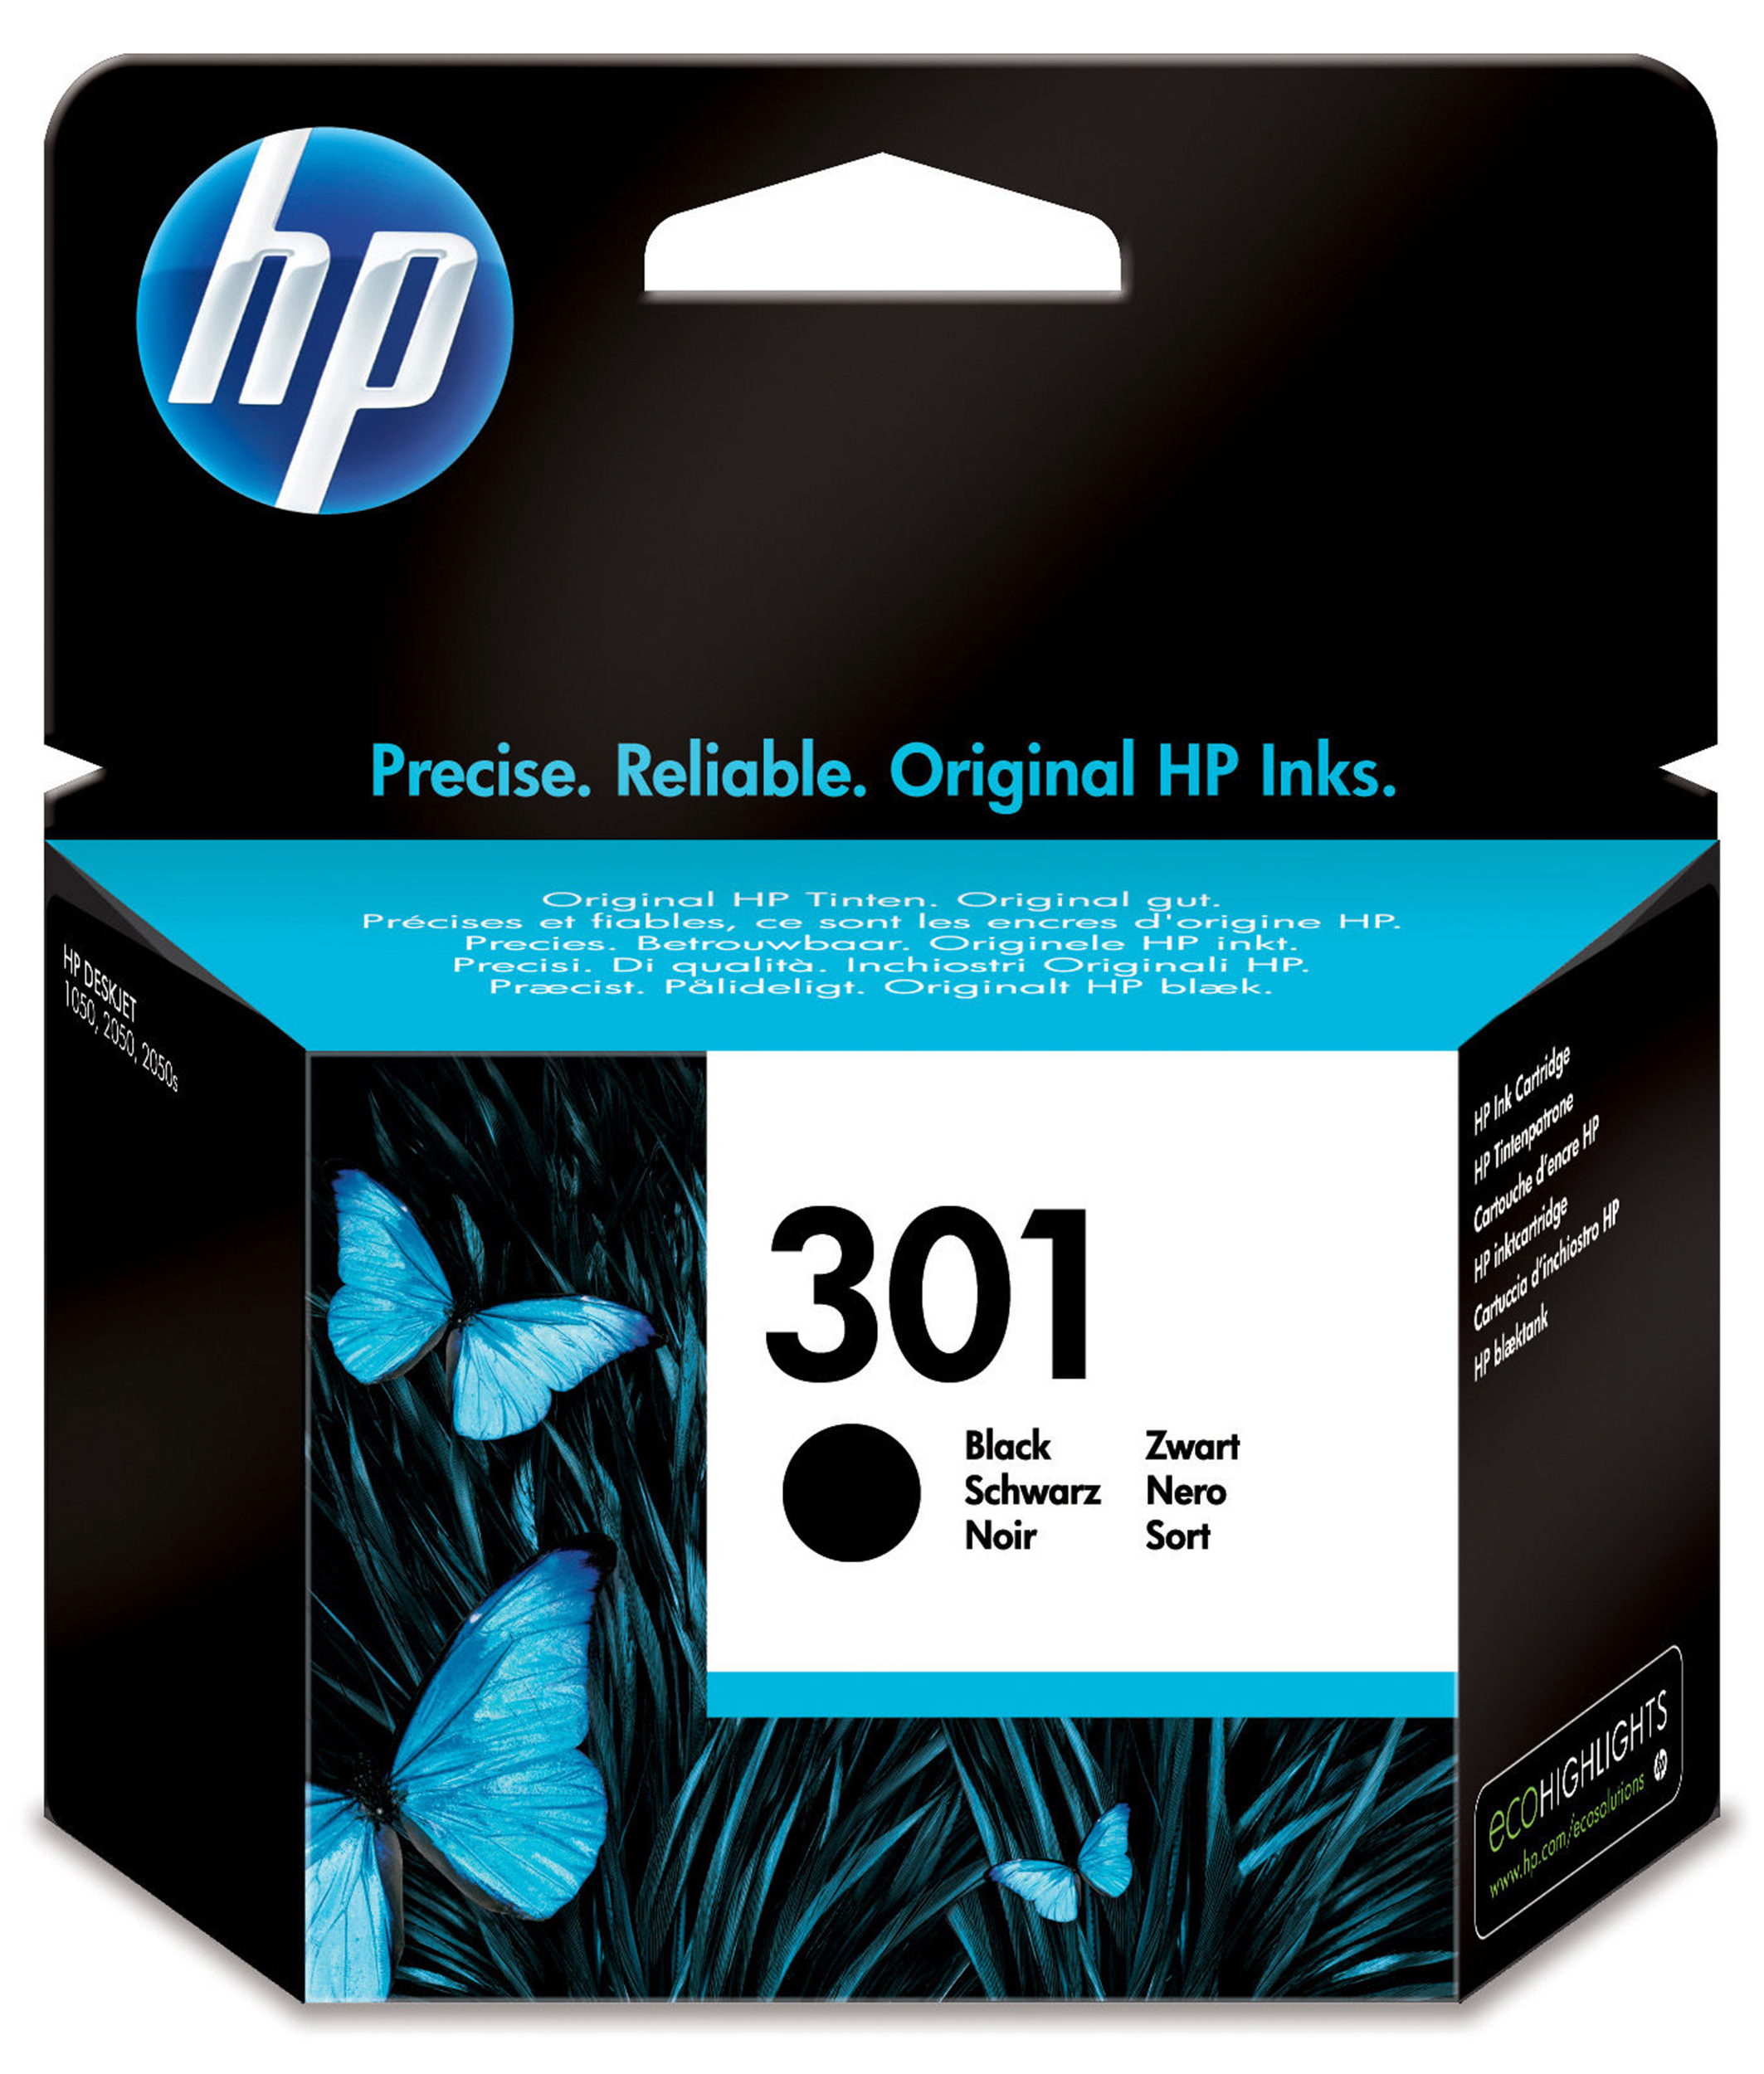 BB Reman HP CH561EE (301) Black Cart 190 pages CH561EE - rem01